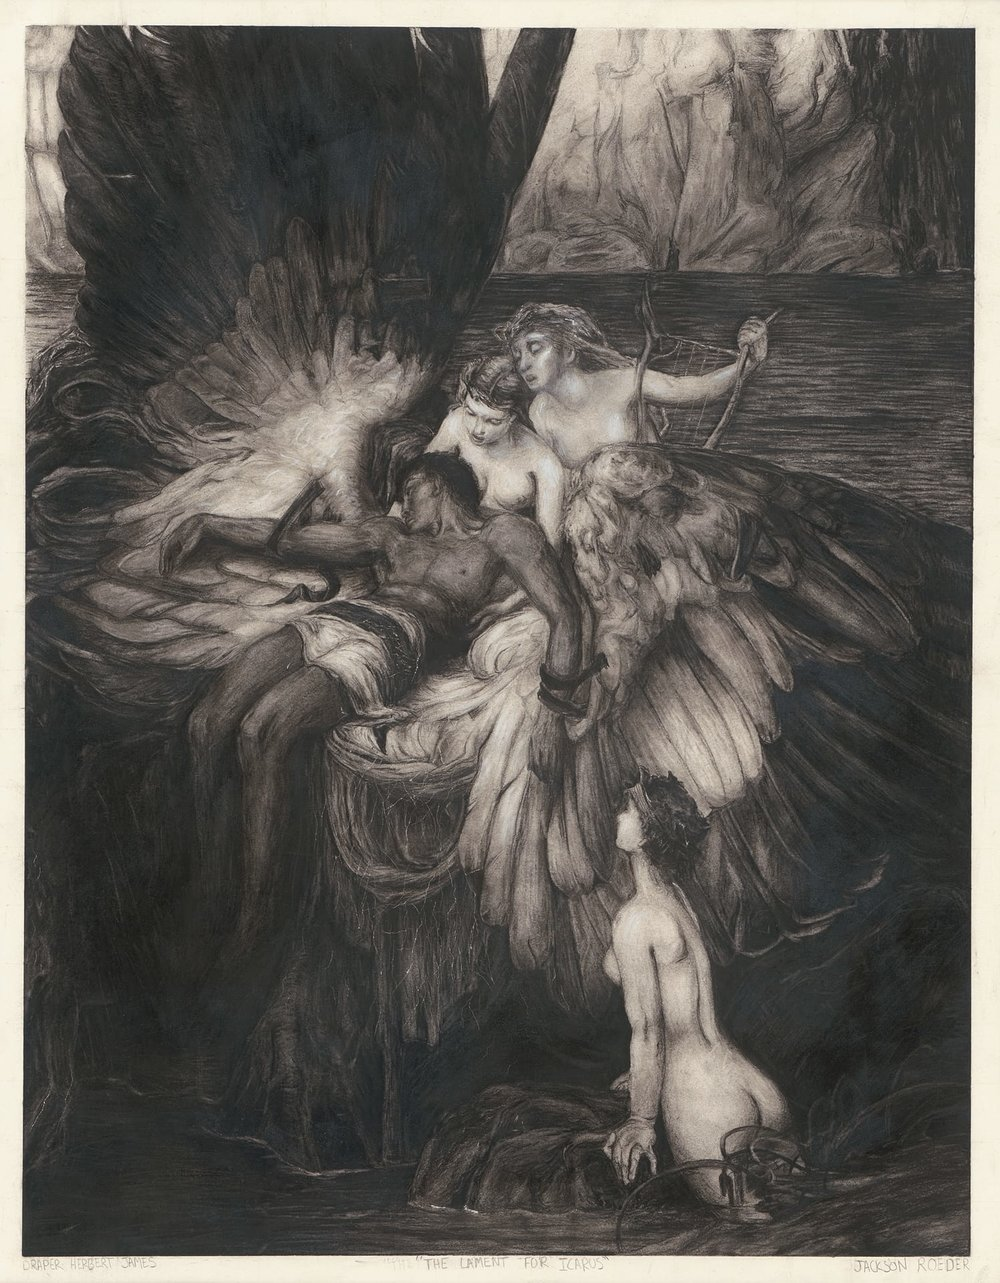 The Lament for Icarus - Reprint Available For Purchase